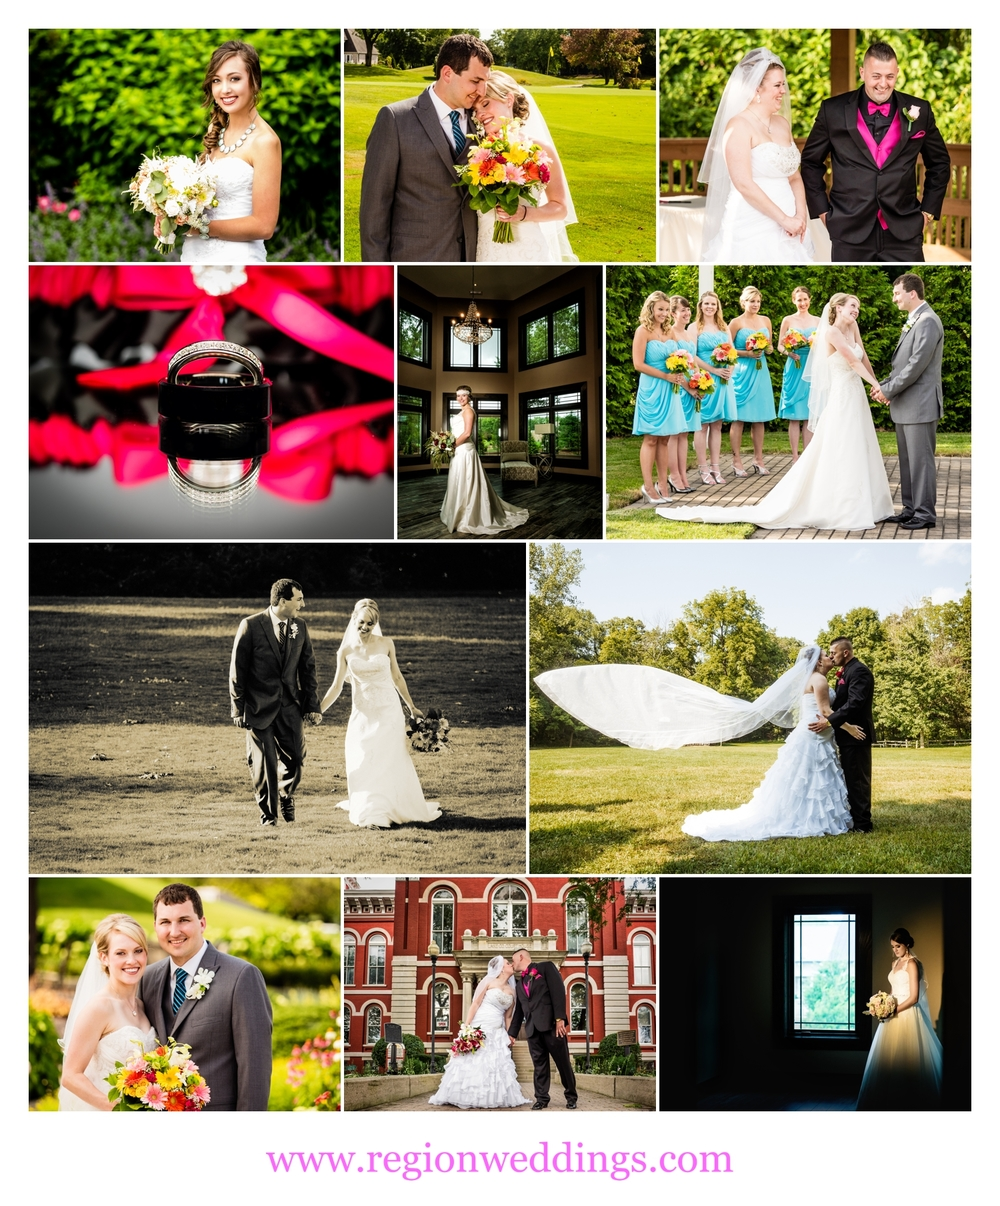 northwest-indiana-wedding-photography-collage7.jpg